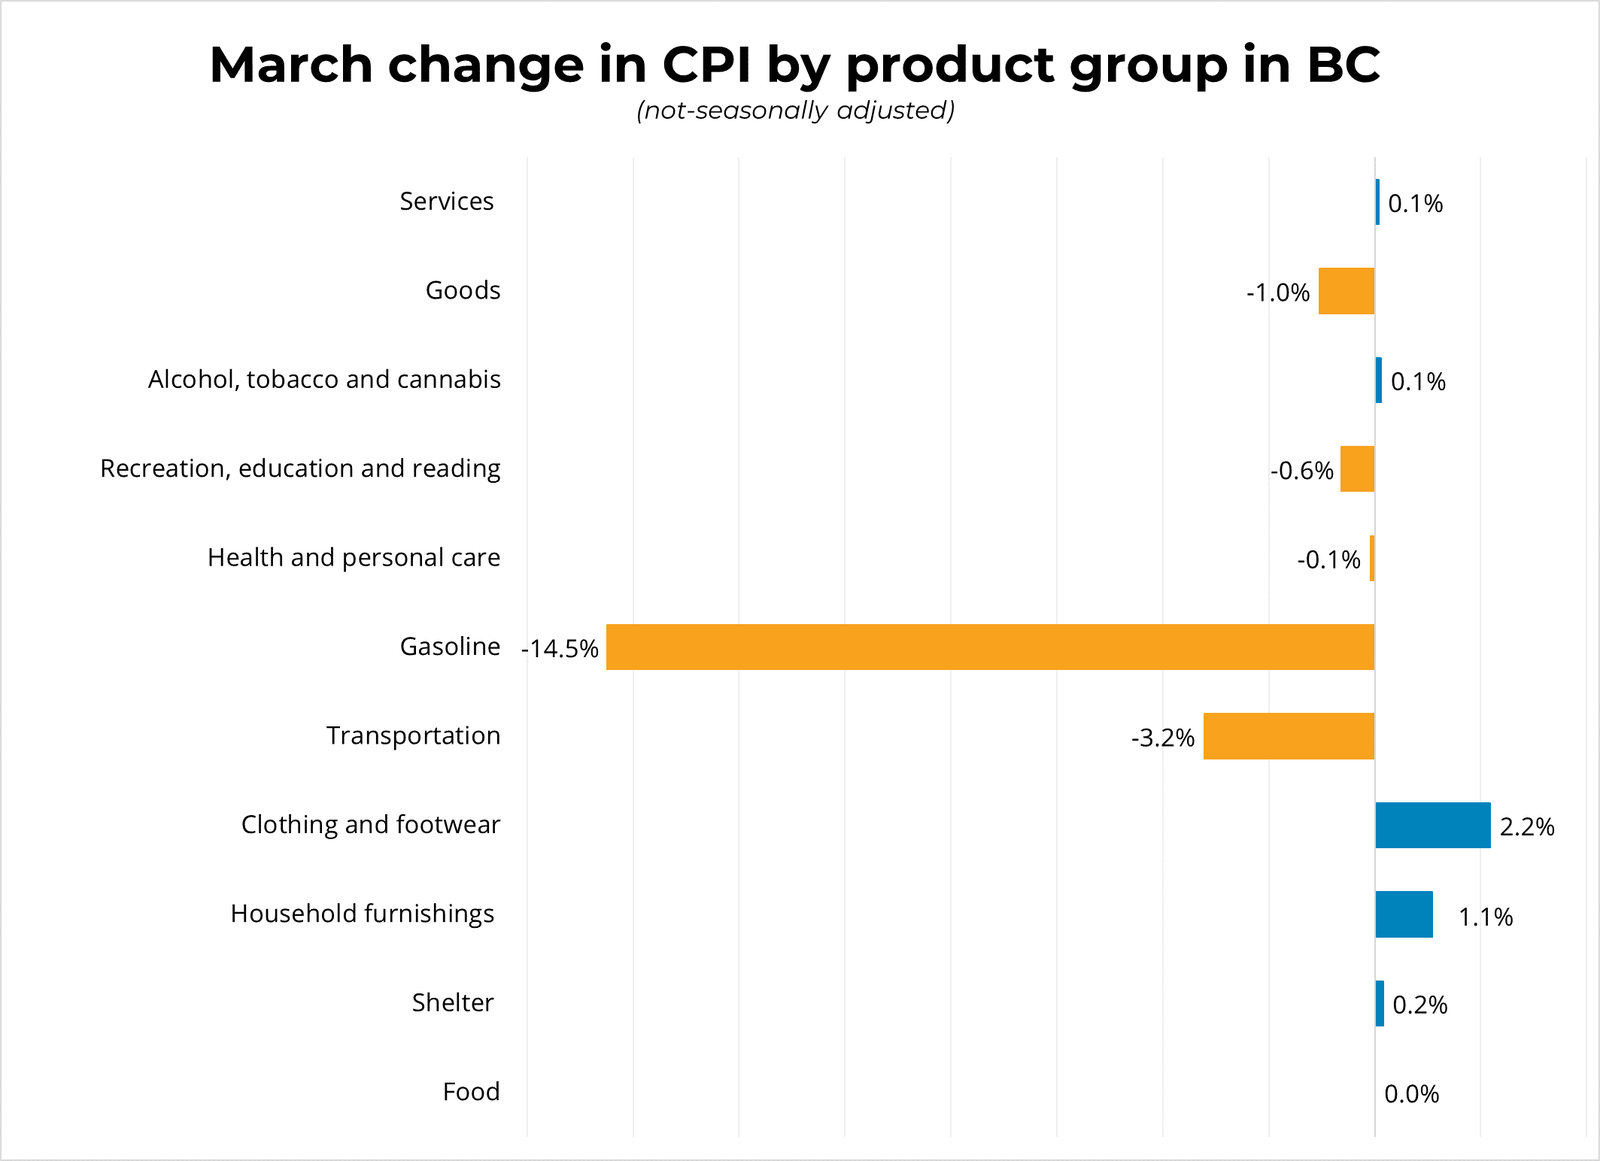 March 2020 change in CPI by product group